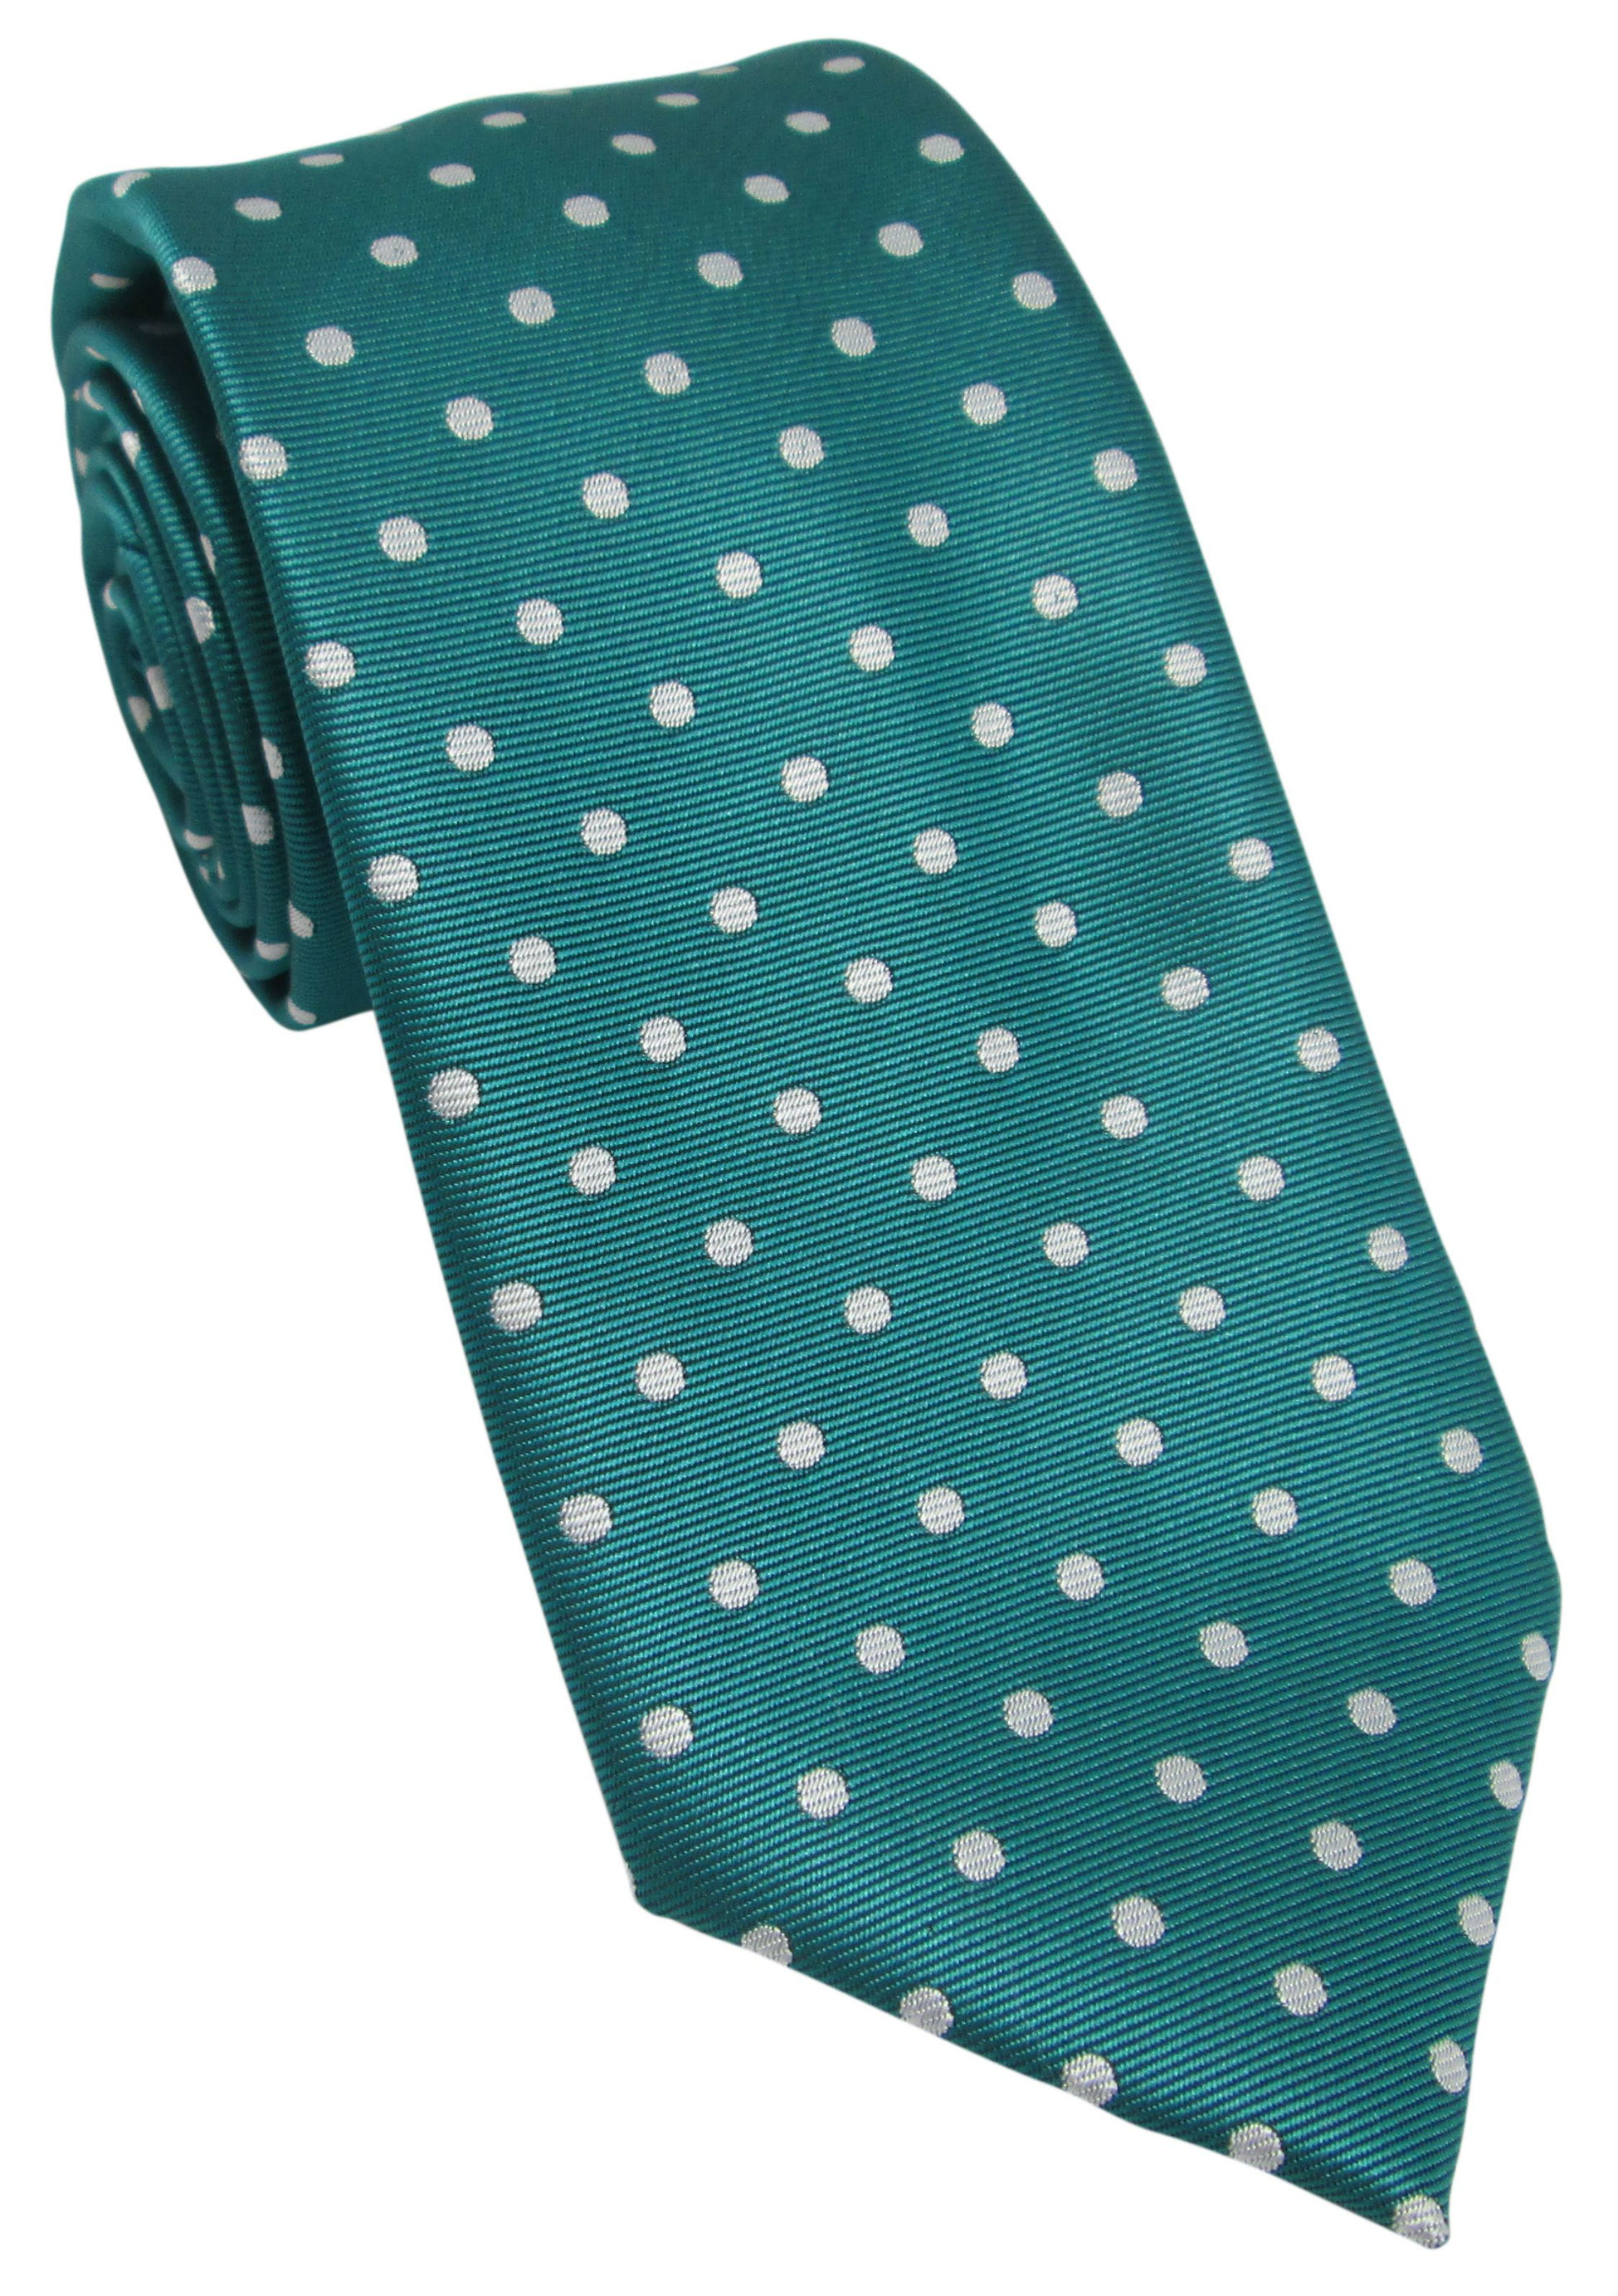 Jade Green with White Polka Dot Tie